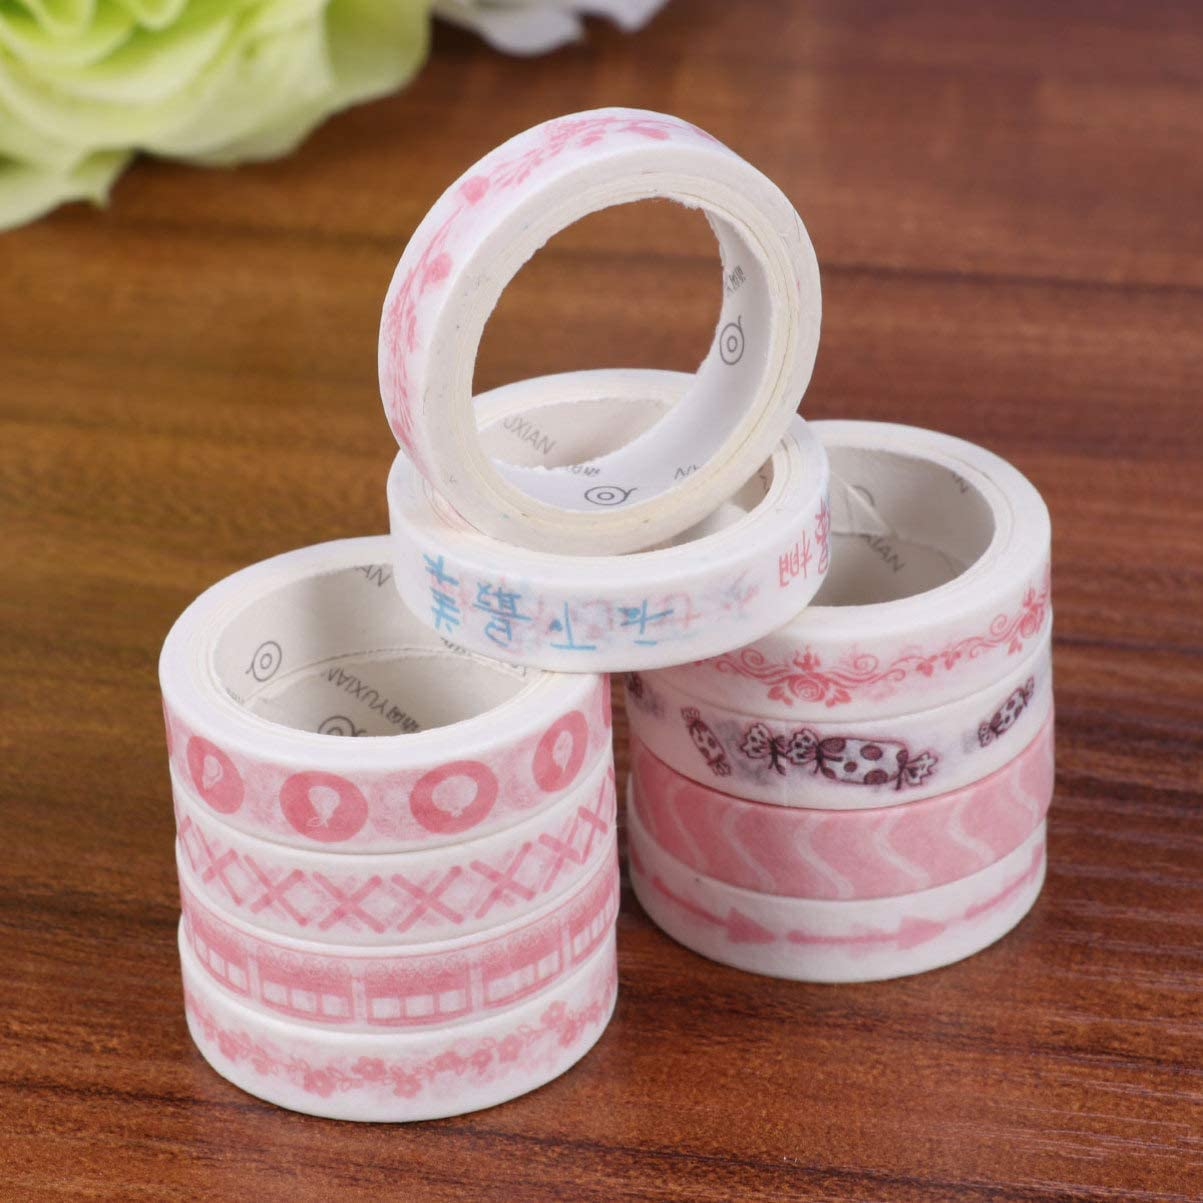 SUPVOX 10pcs Decorative Washi Tape Cartoon Colorful Washi Masking Tape DIY Sticky Paper Tapes Self Adhesive Paper Tape for DIY Scrapbook Notebook Decor Greenery